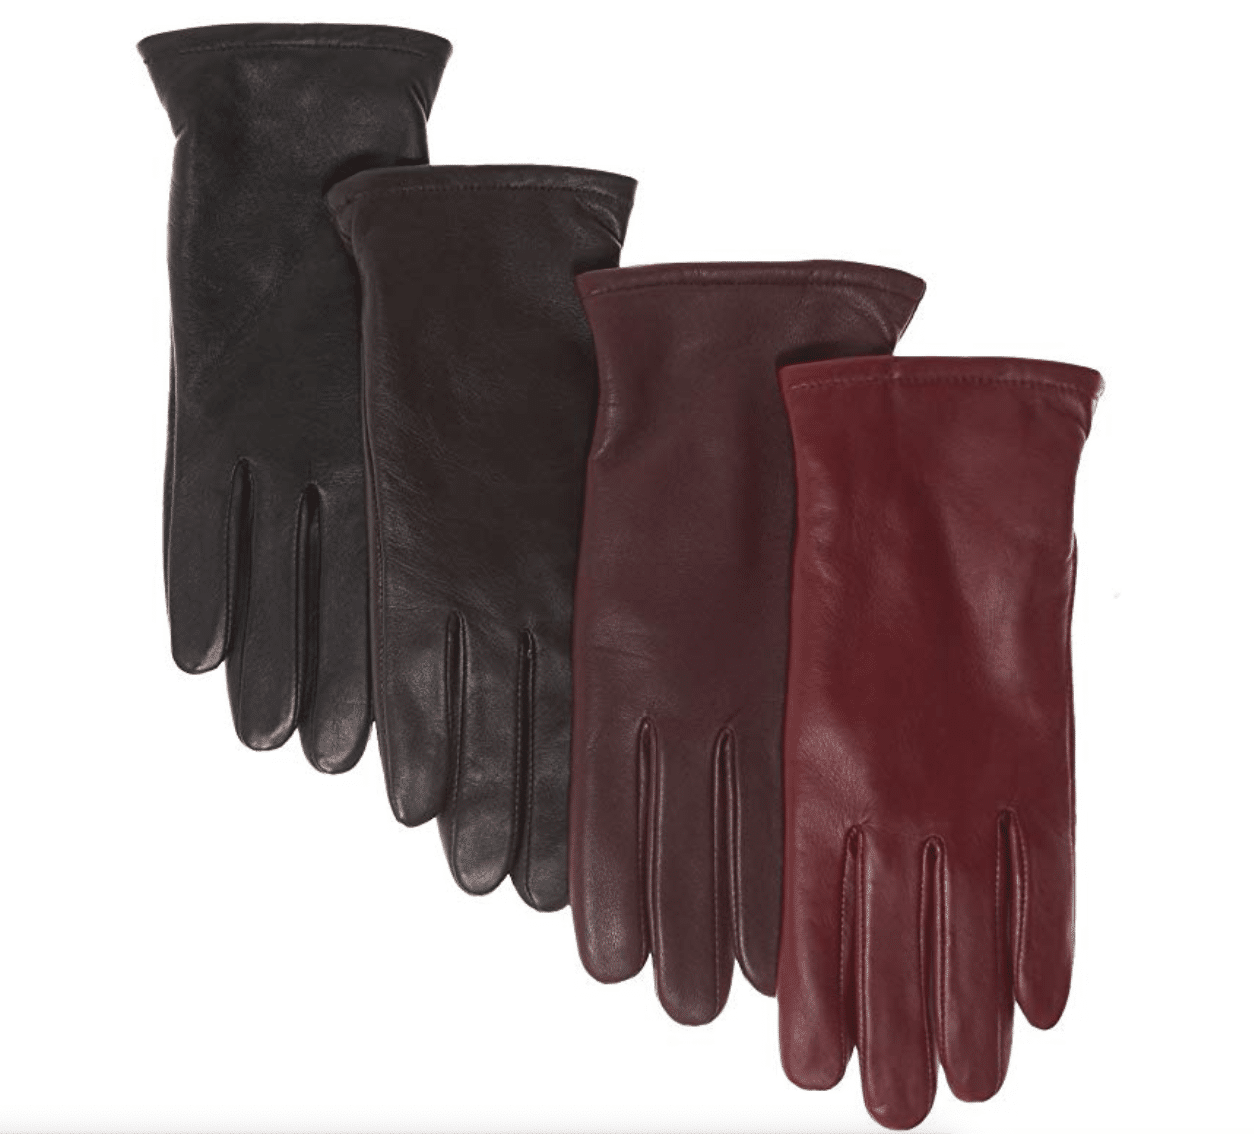 leather-anniversary-gifts-for-her-gloves